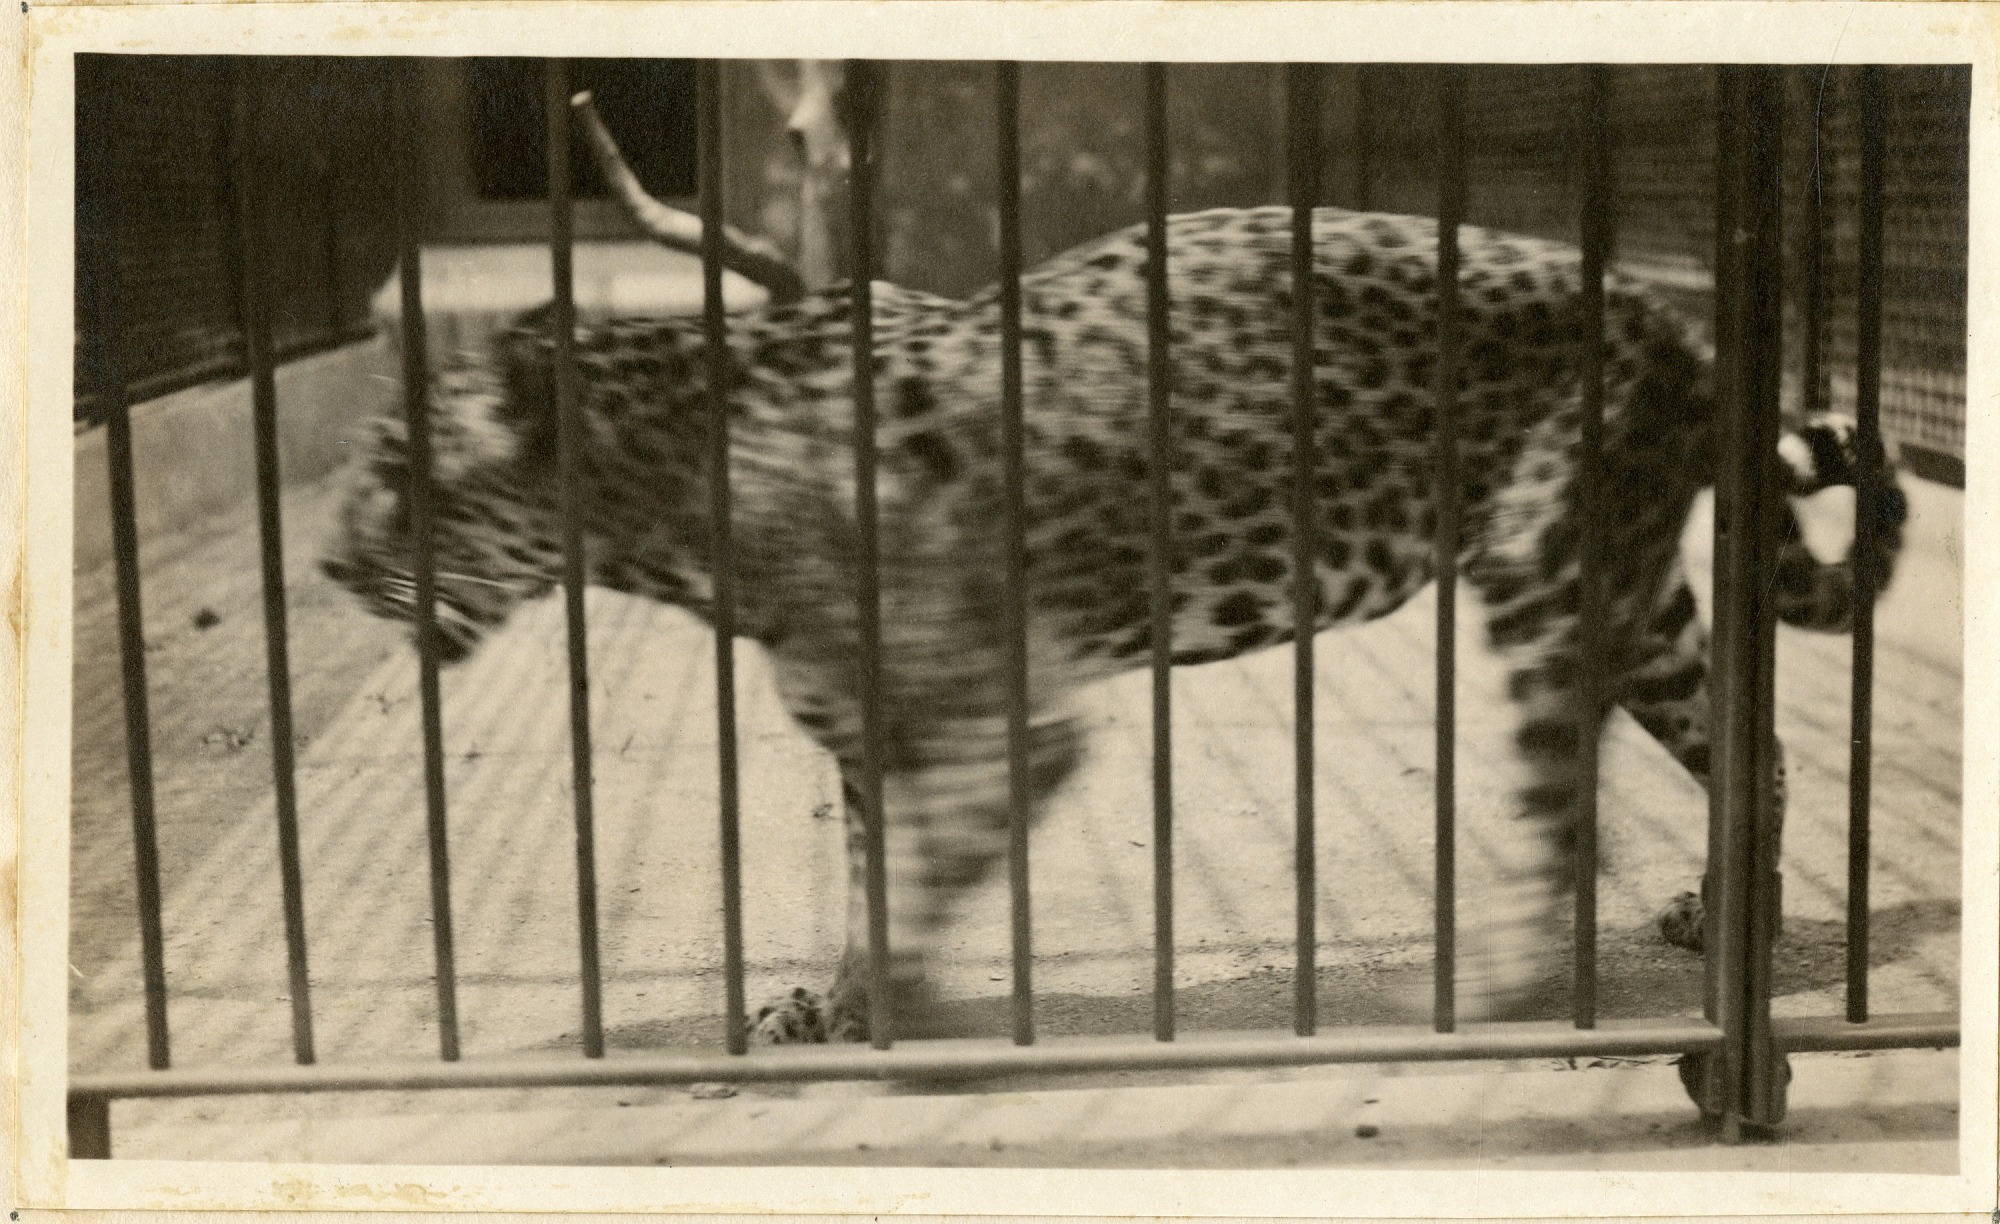 Views of the National Zoological Park in Washington, DC, showing Jaguar